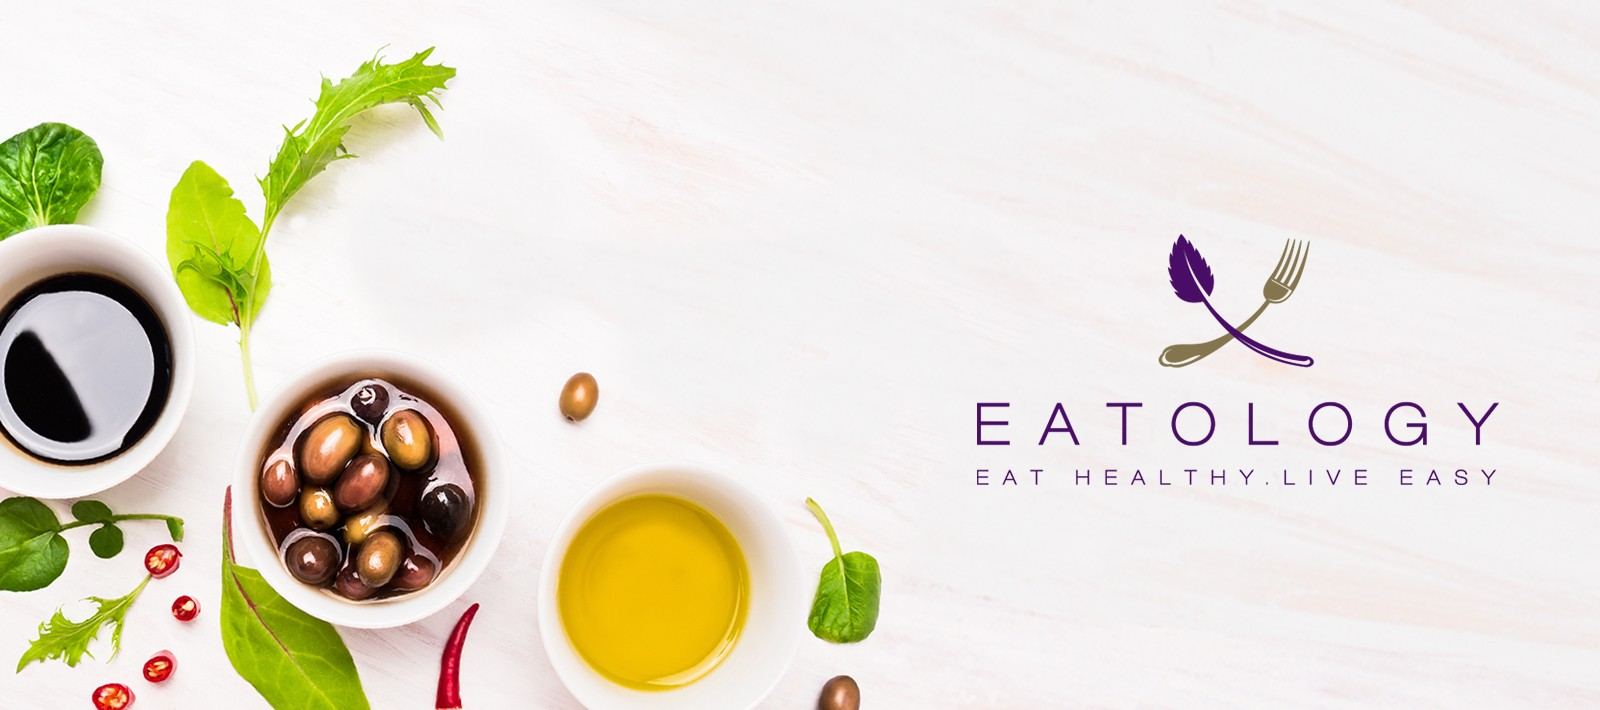 Brand creation services for Eatology